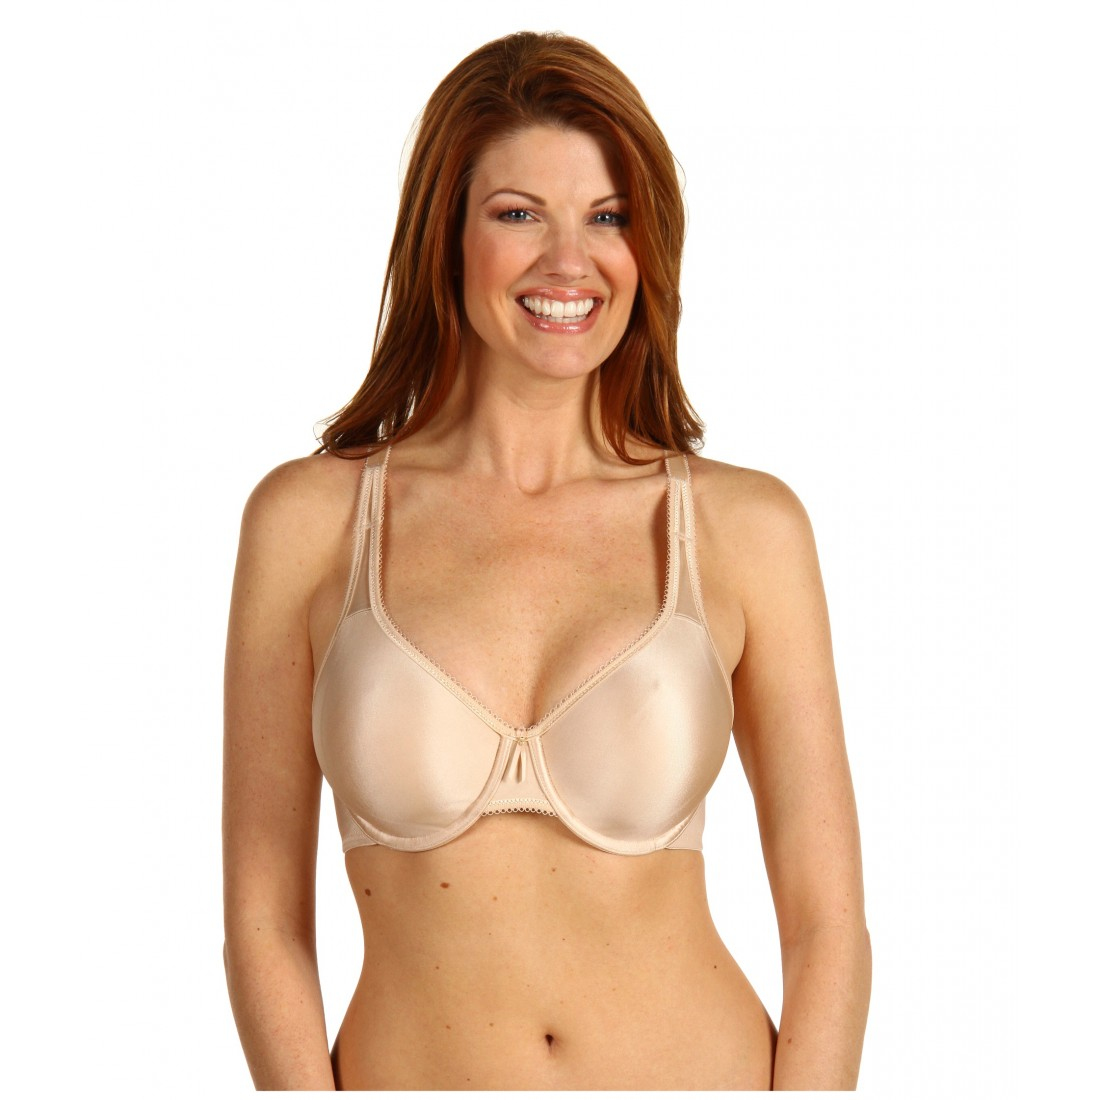 43afb1a5f5a Wacoal Basic Beauty Full Figure Underwire Bra 855192 ZPSKU 7900208 Natural  Nude